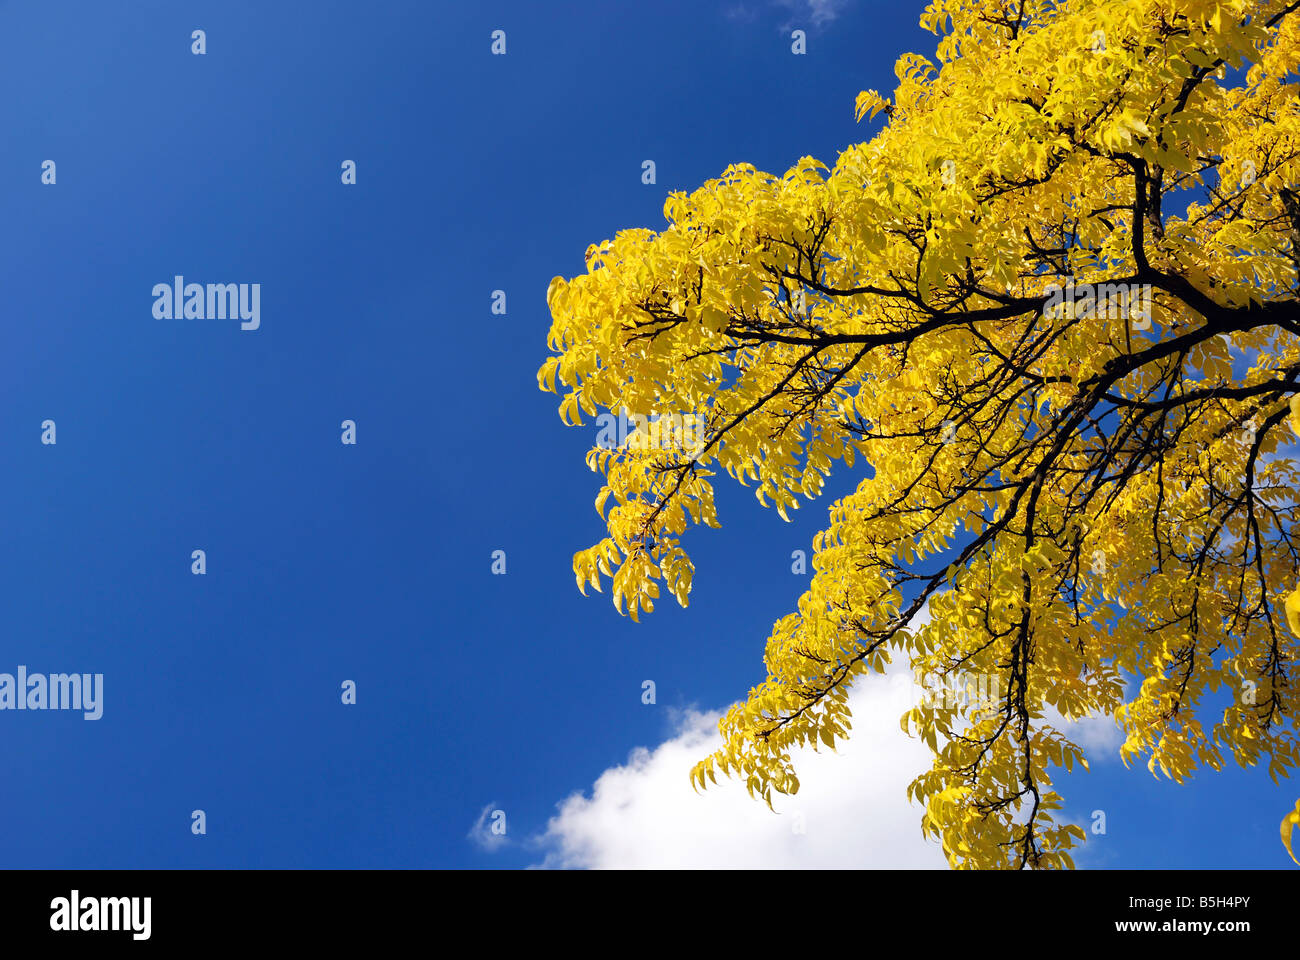 Yellow crown of autumn tree and blue sky, single white cloud hiding behind black branches with bright leaves - Stock Image